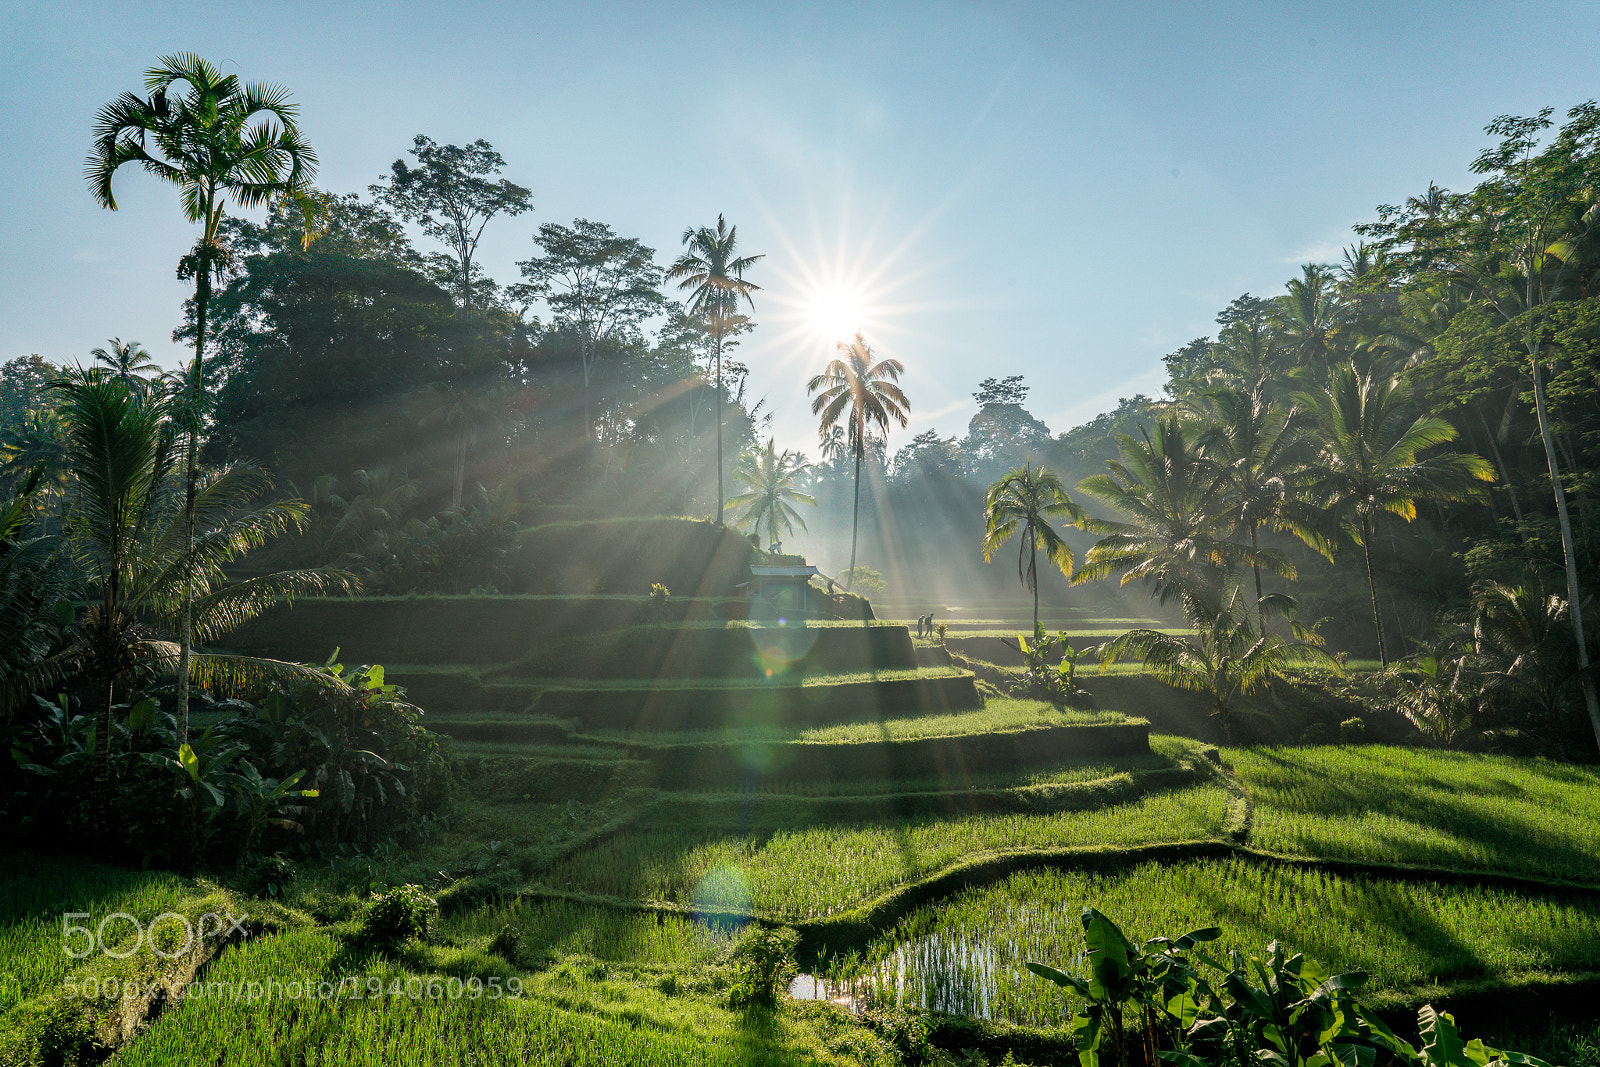 Sunrise Rice Paddies, Sony ILCE-7RM2, 20mm F1.4 DG HSM | Art 015